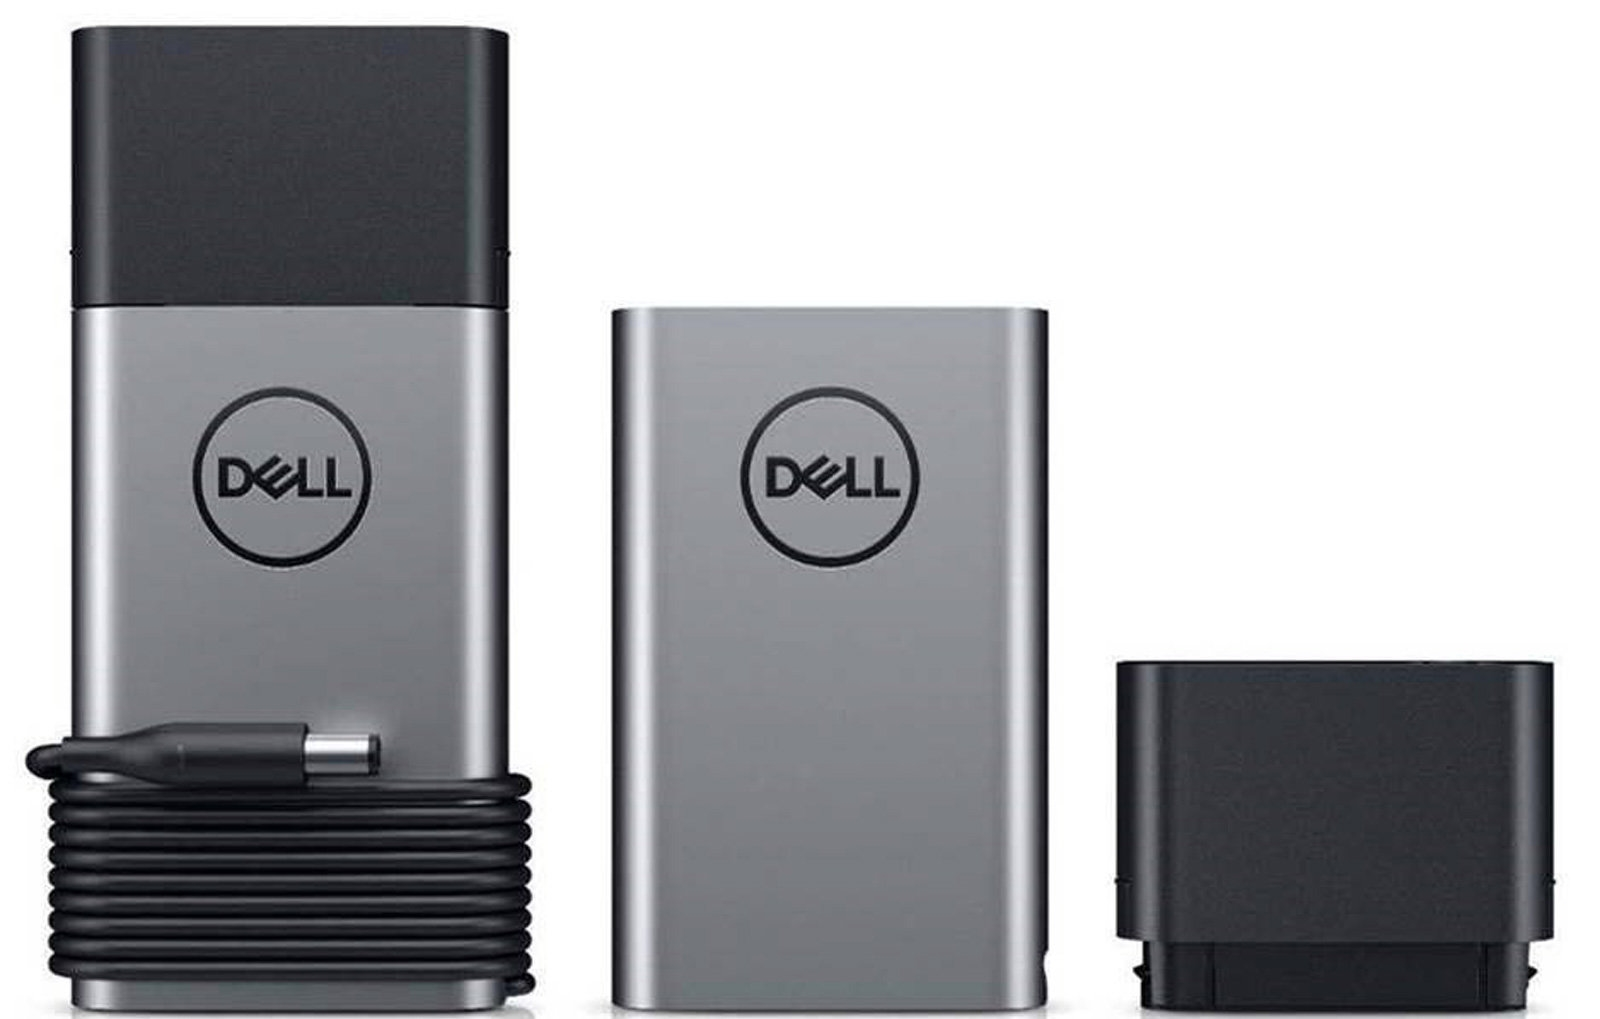 Dell recalls hybrid laptop power adapters over shock risks | DeviceDaily.com